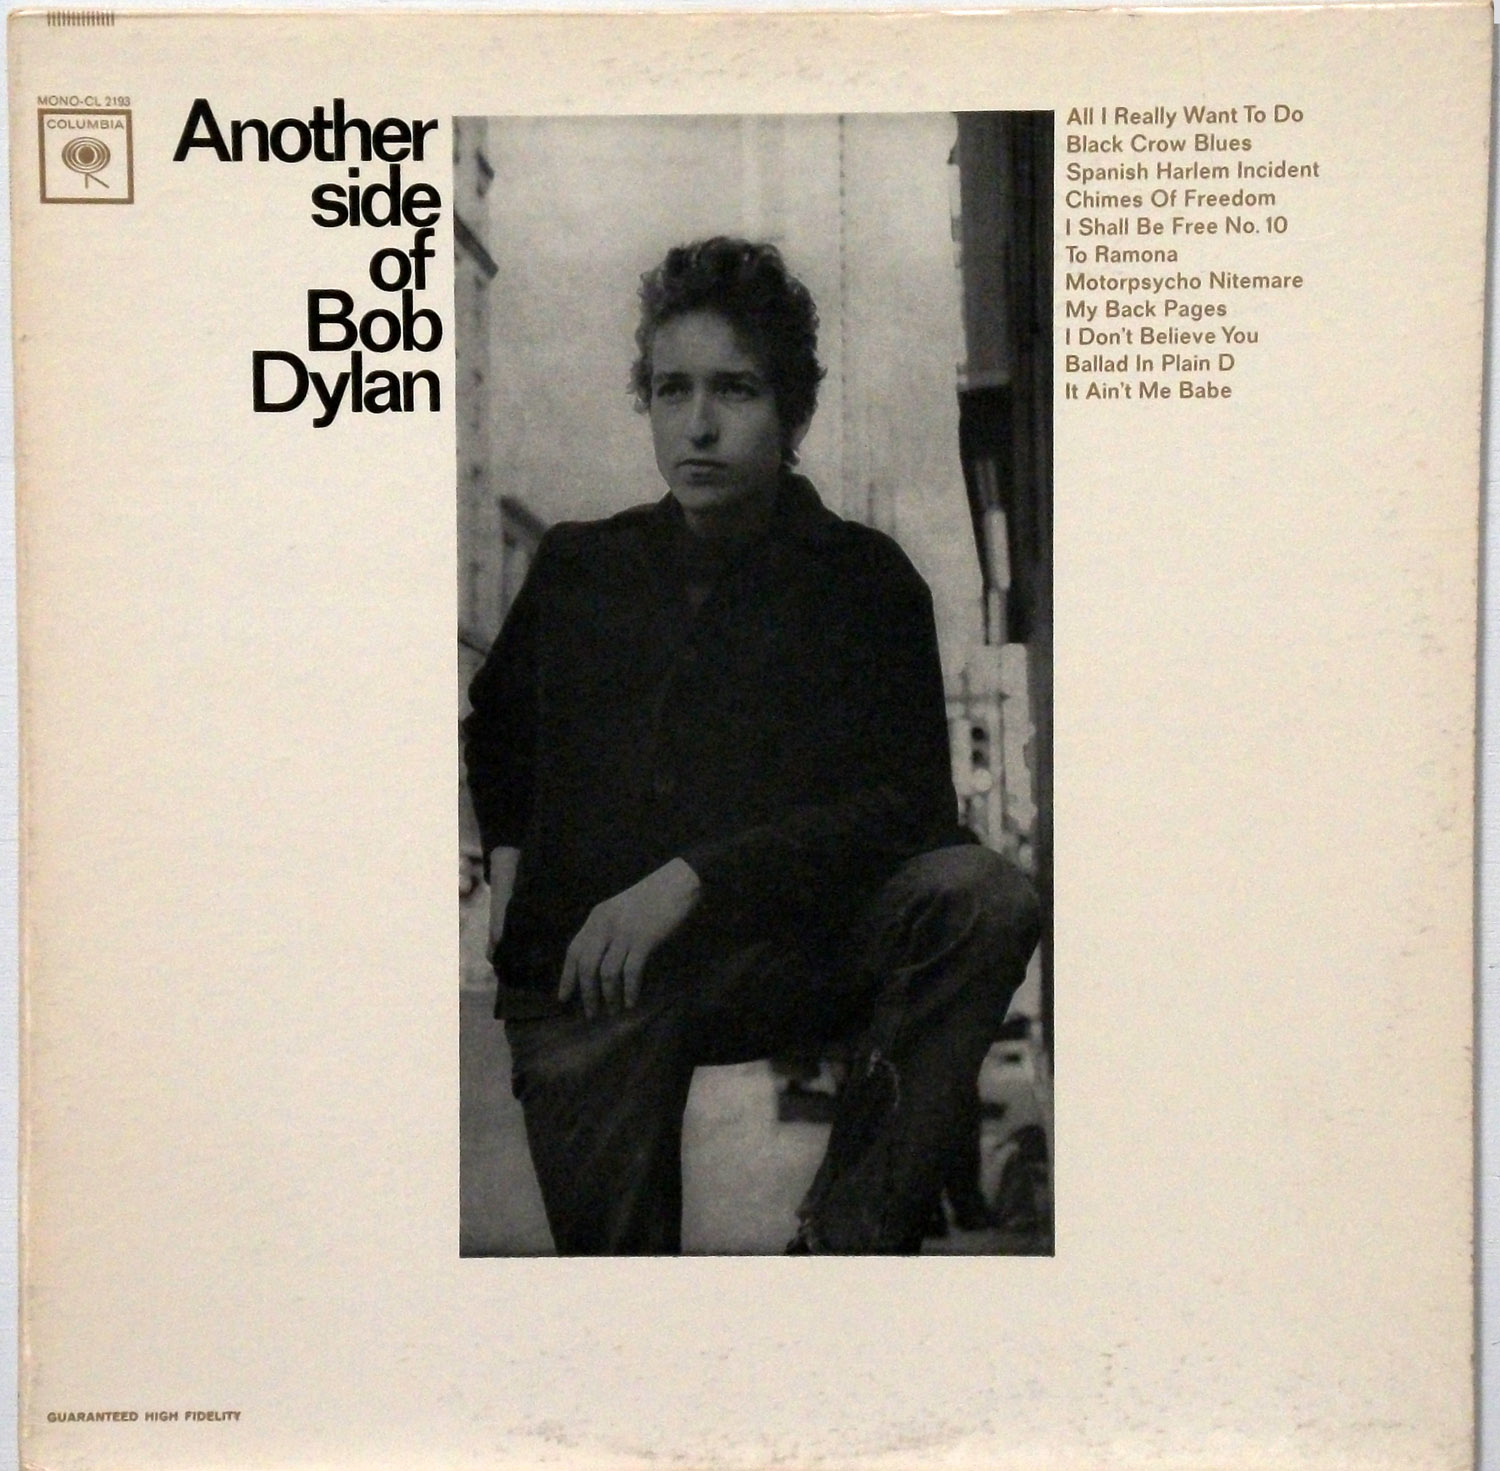 Bob Dylan - Another Side of Bob Dylan sealed mono 1964 LP